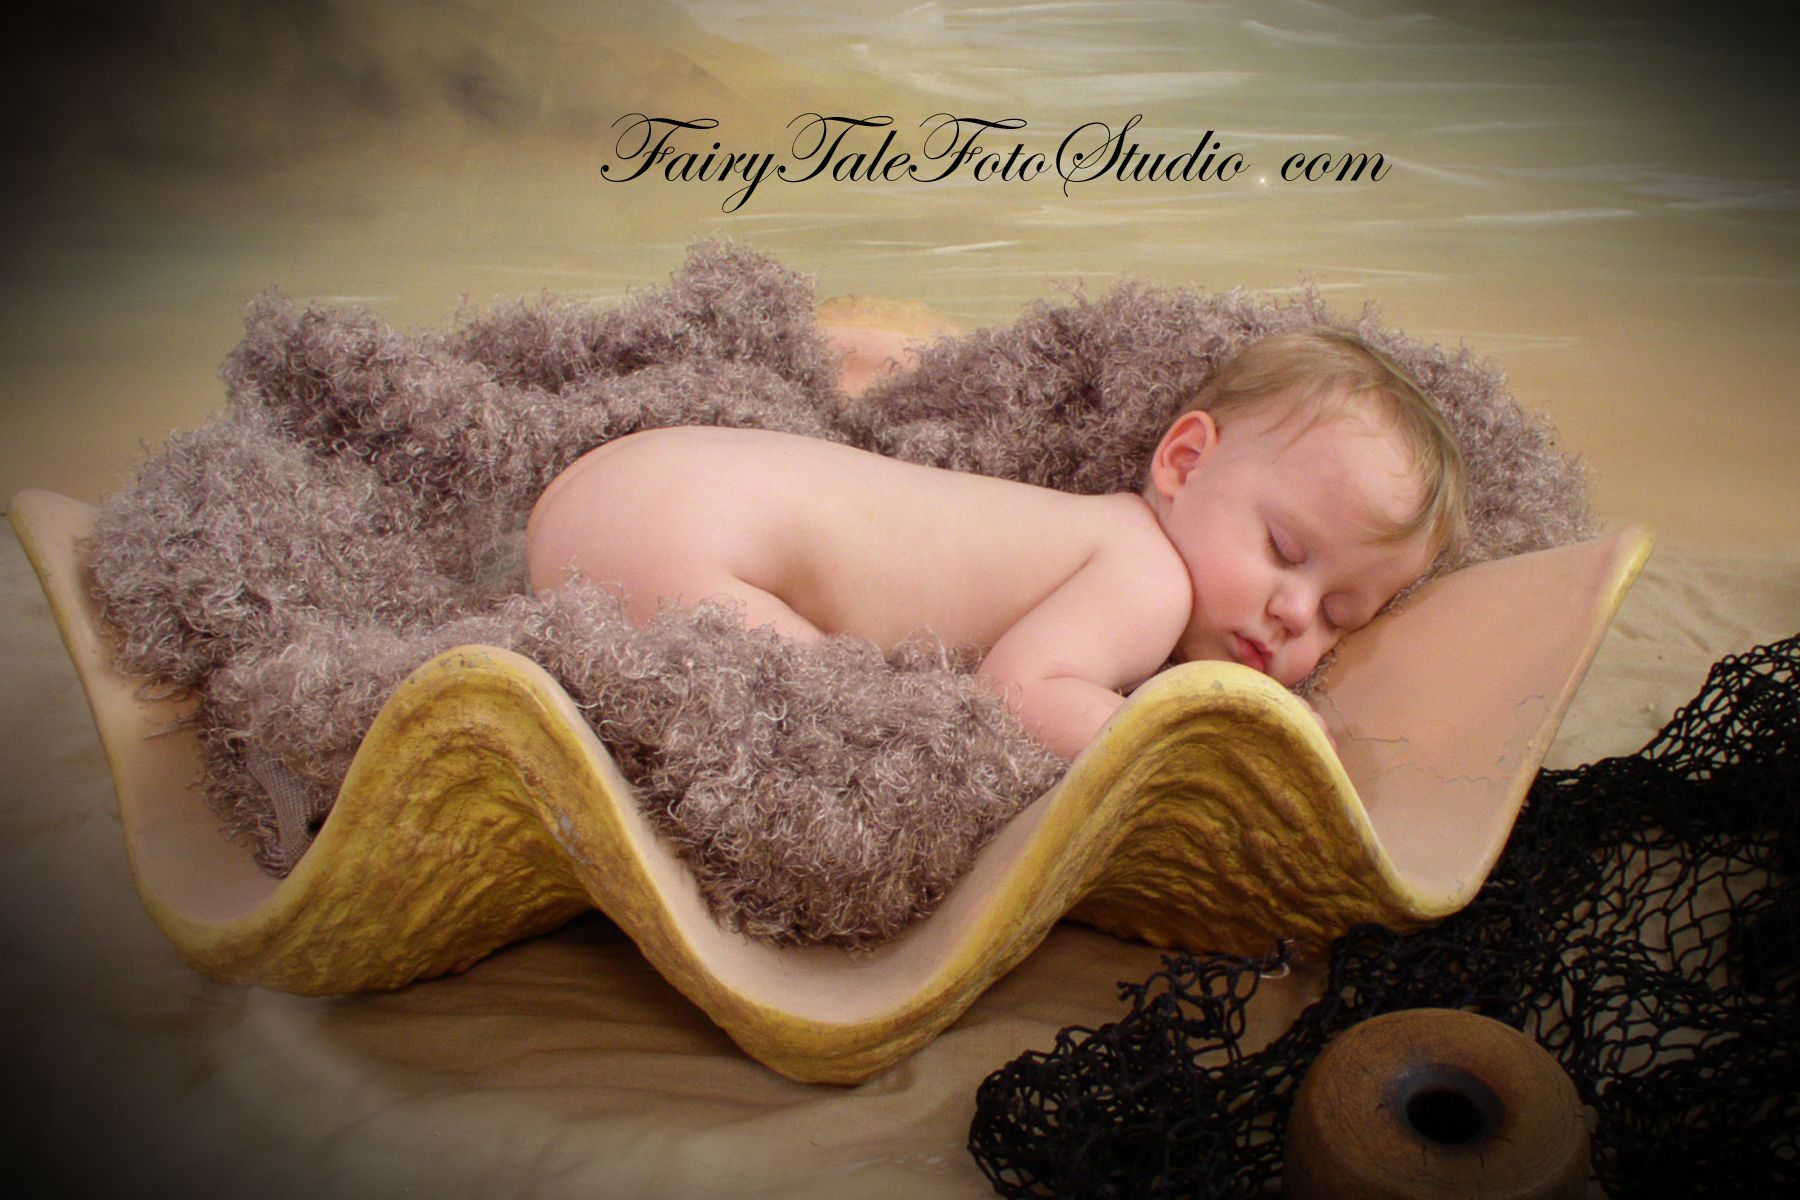 Baby In A Giant Clamshell Clam Shell Seashell Sea